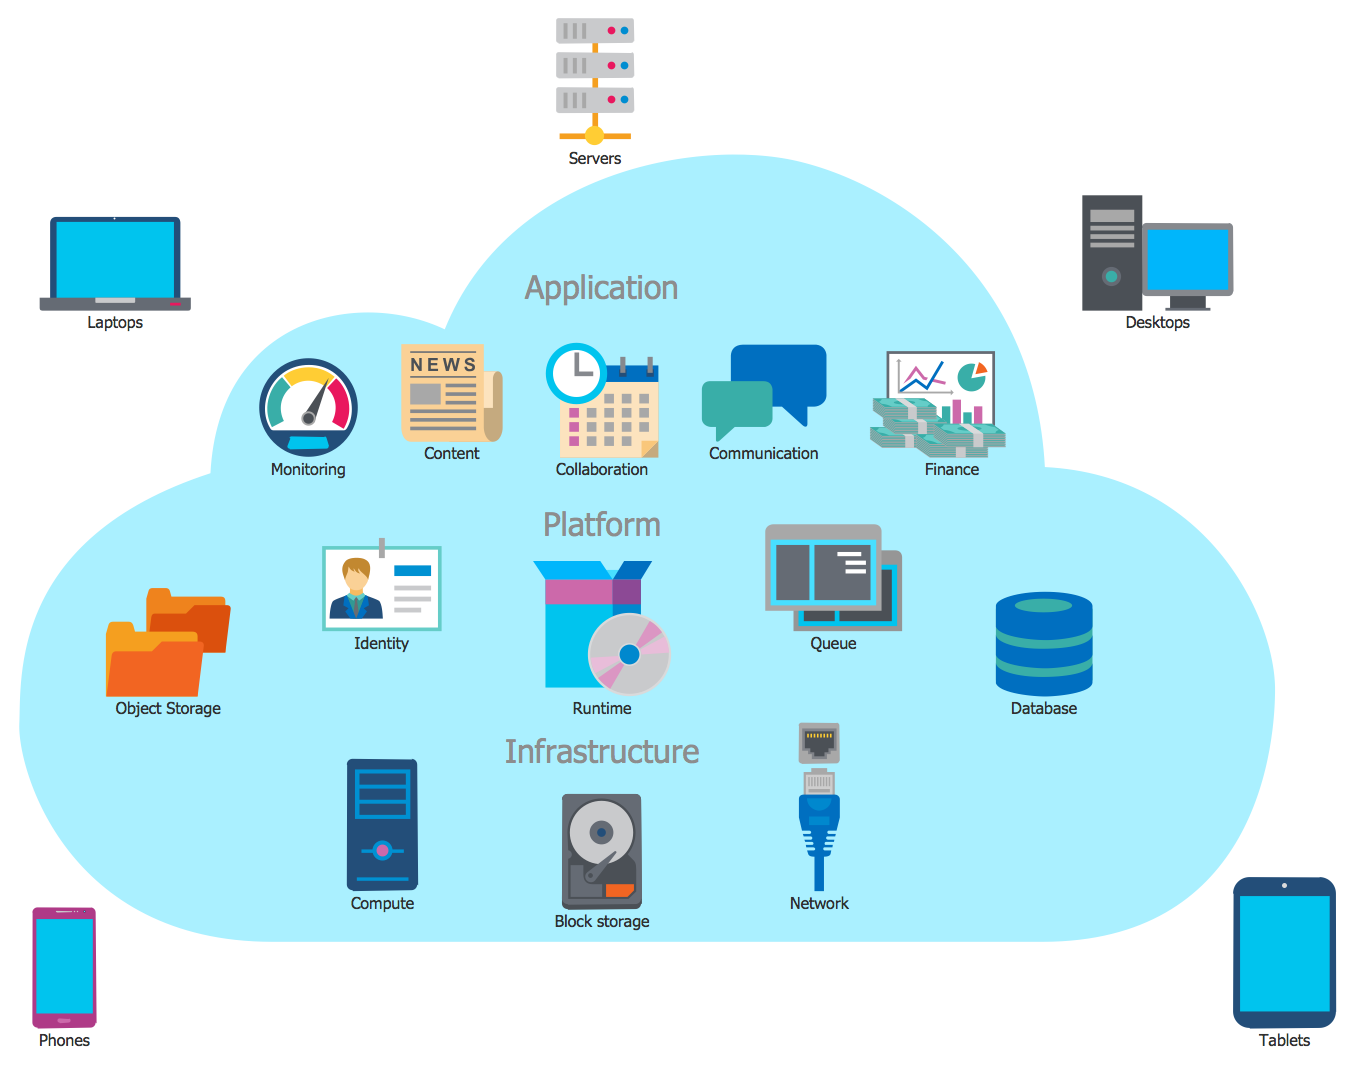 ER Diagram for Cloud Computing